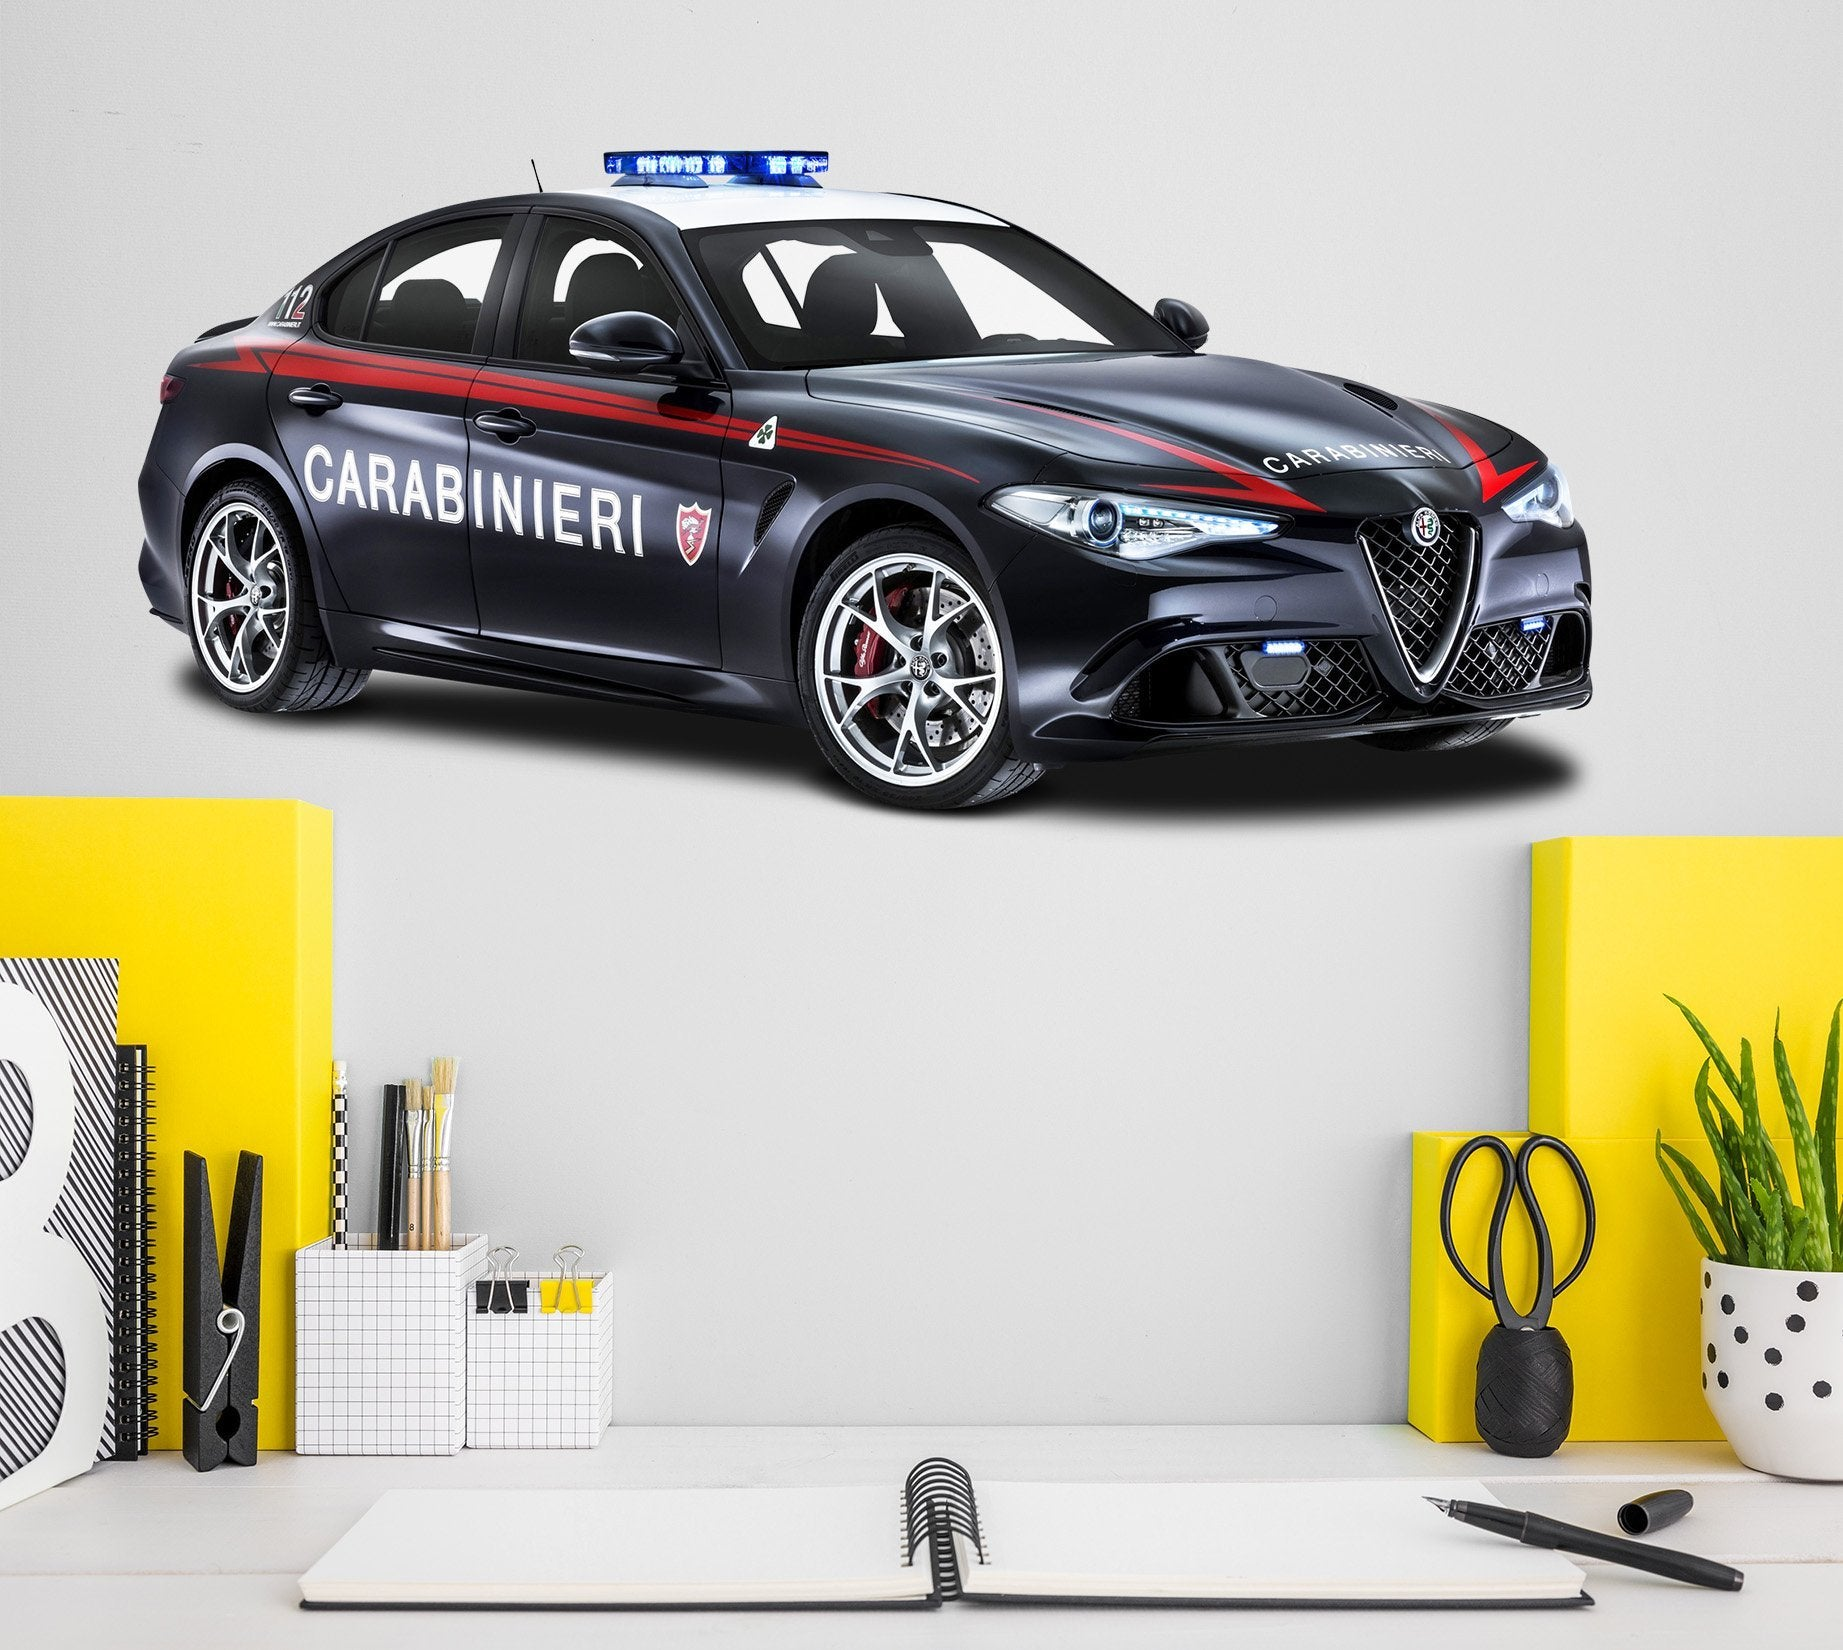 3D Alfa Romeo Giulia 0018 Vehicles Wallpaper AJ Wallpaper